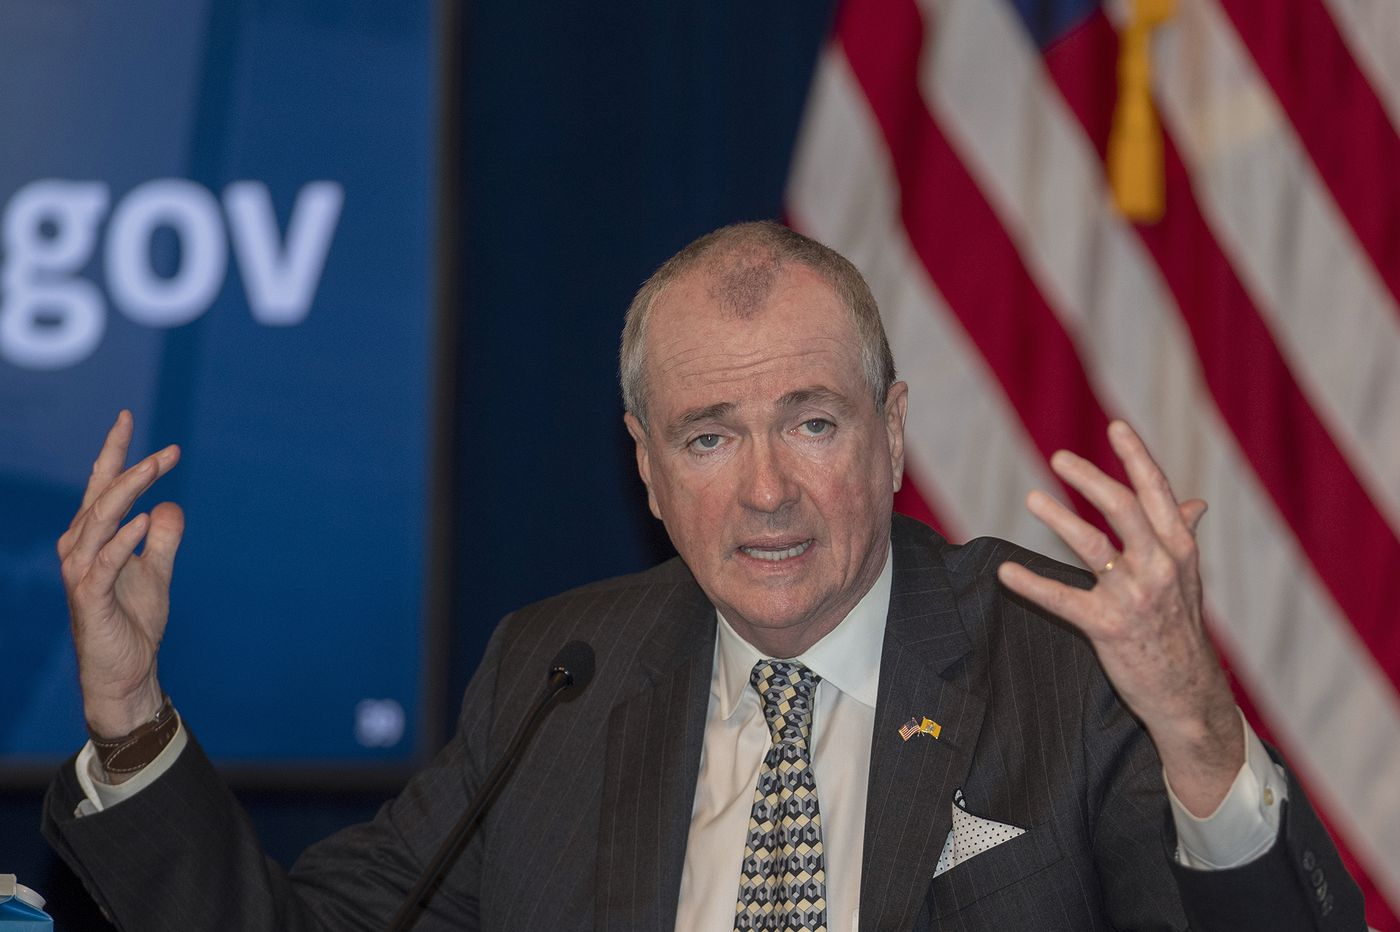 Gov. Phil Murphy signs a bill abolishing the 'slave-era' freeholder title in New Jersey